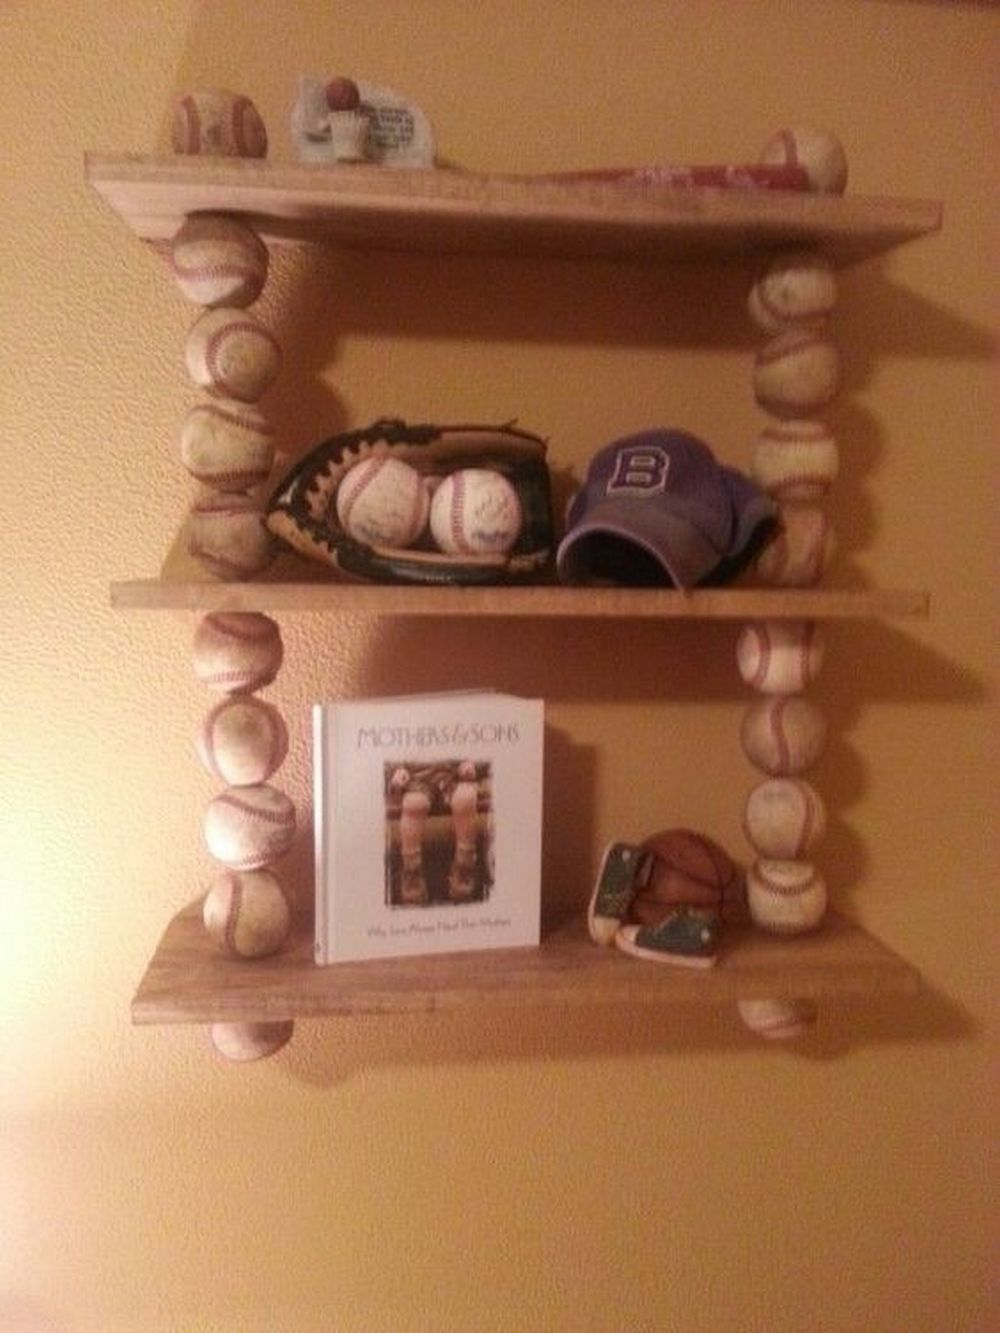 How To Build A Shelf From Baseballs Your Projects Obn